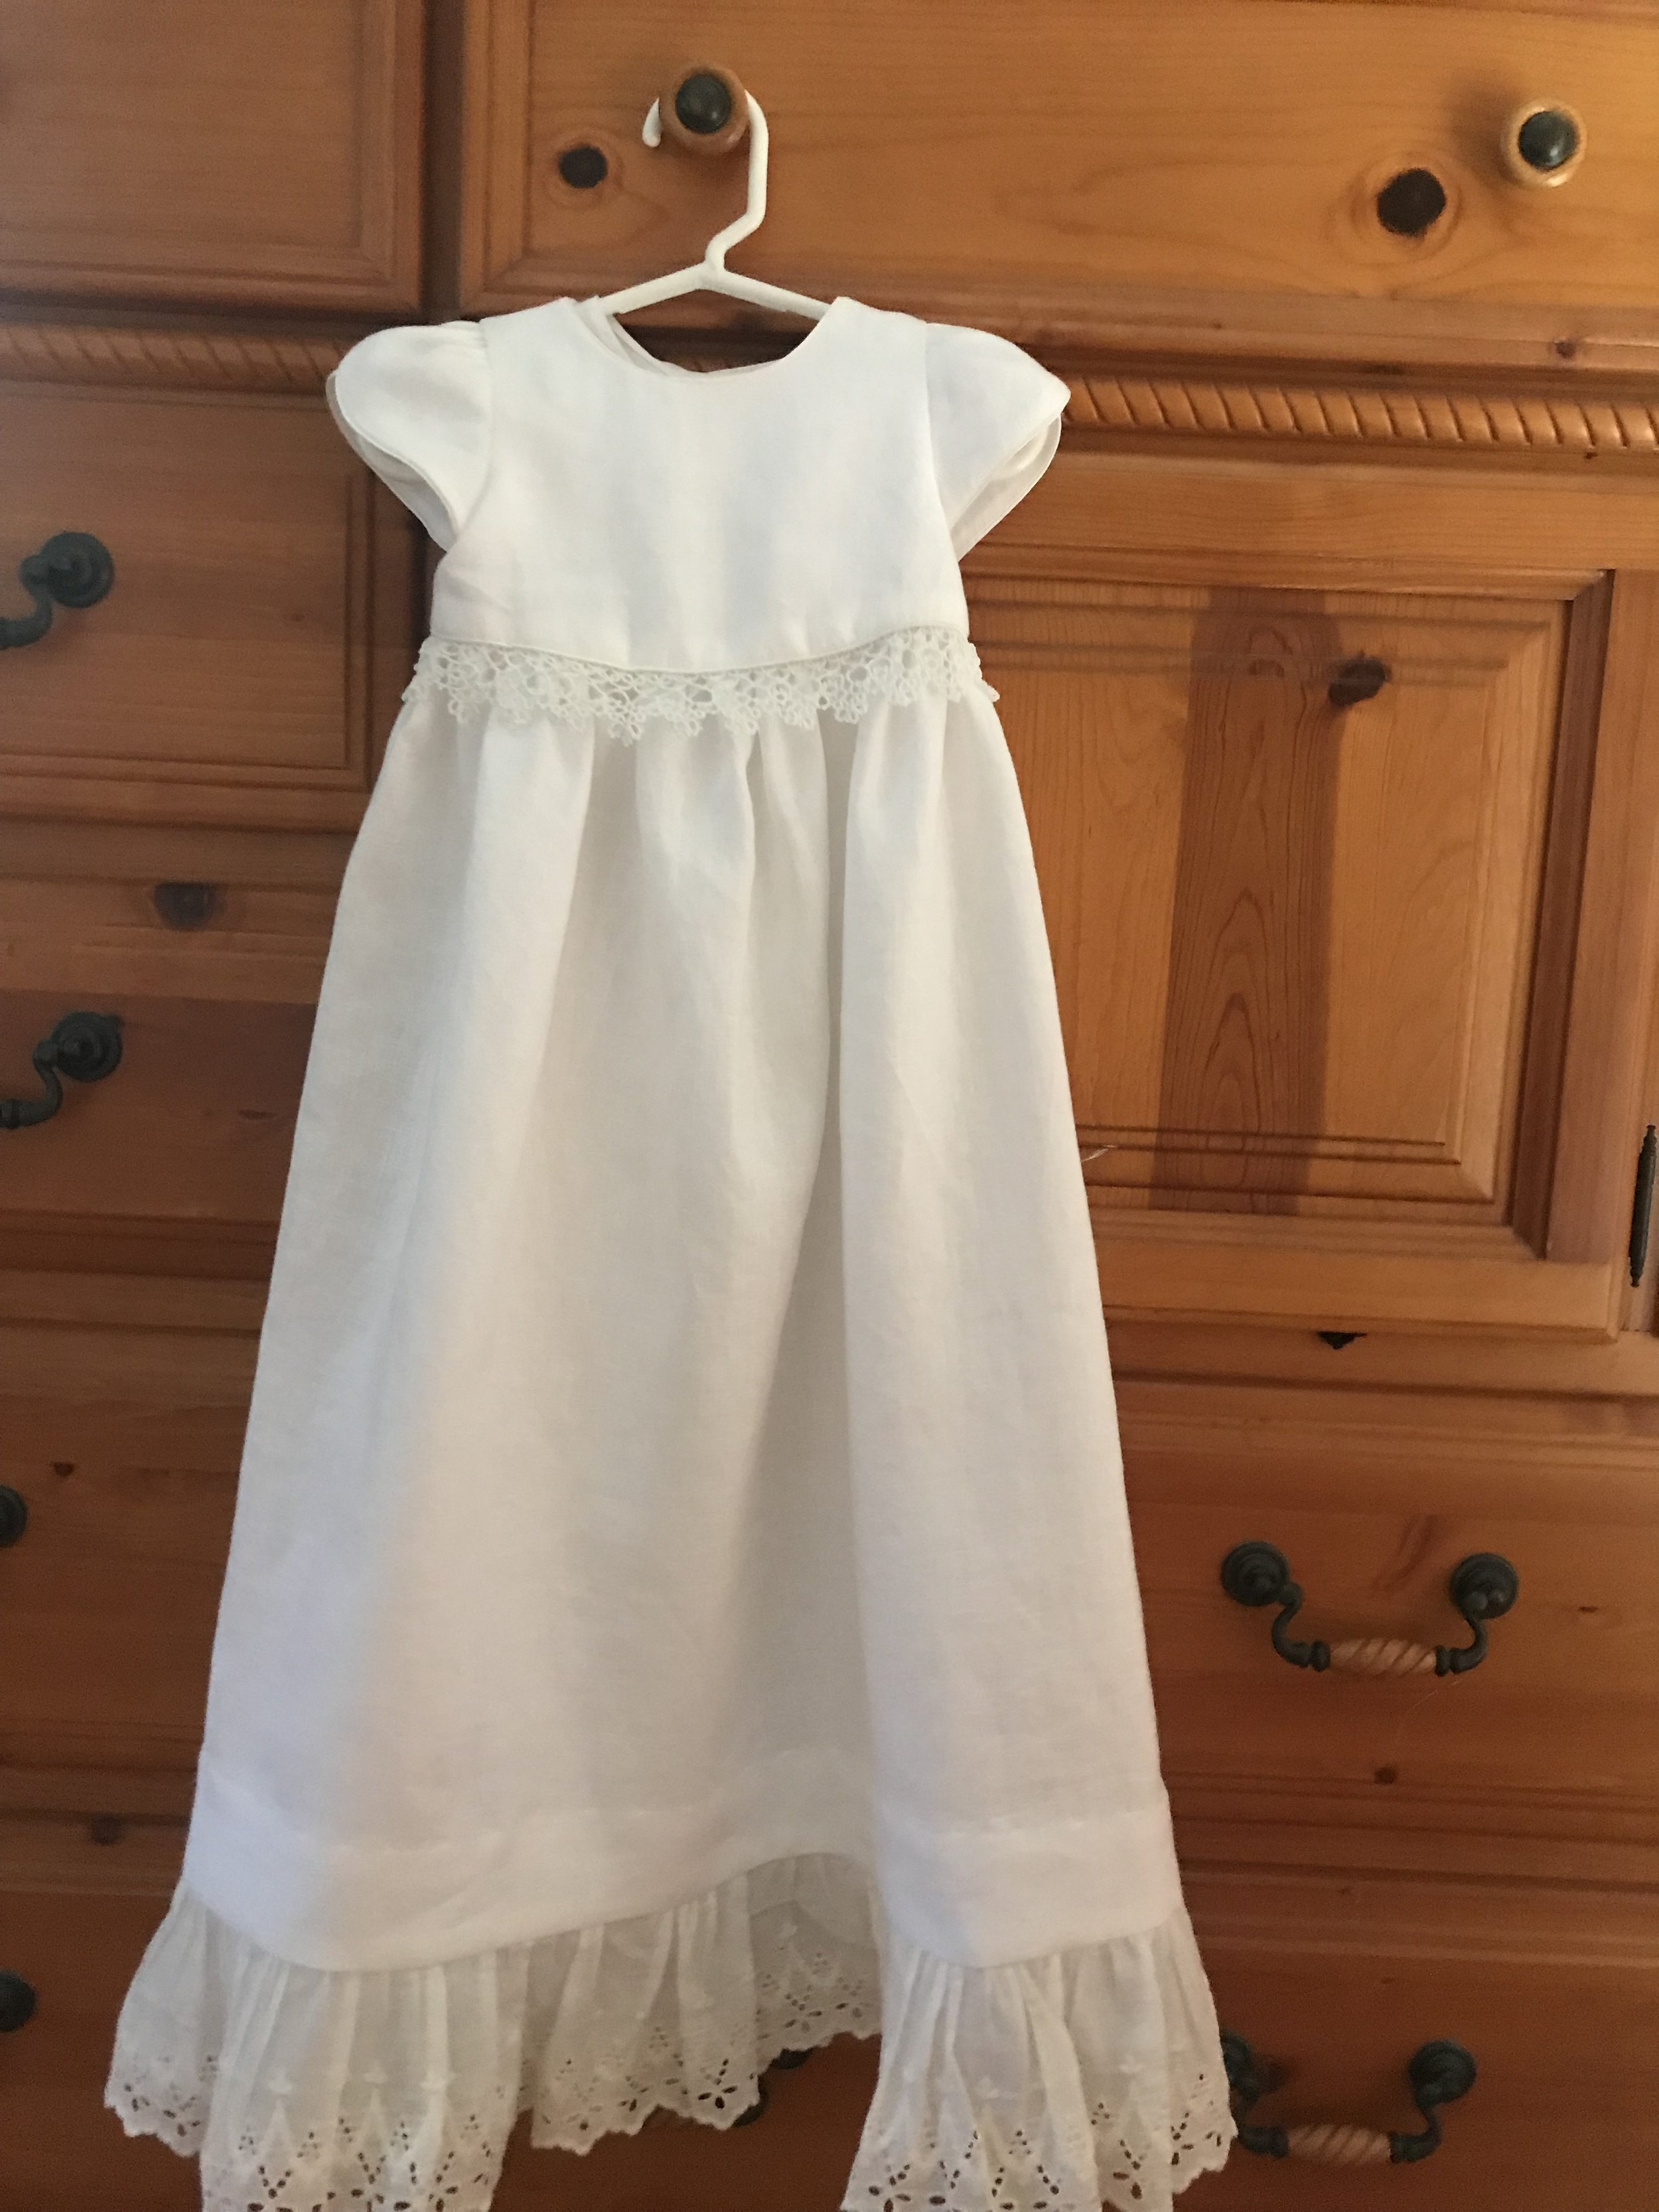 Christening gown made from heirloom pillowcases.